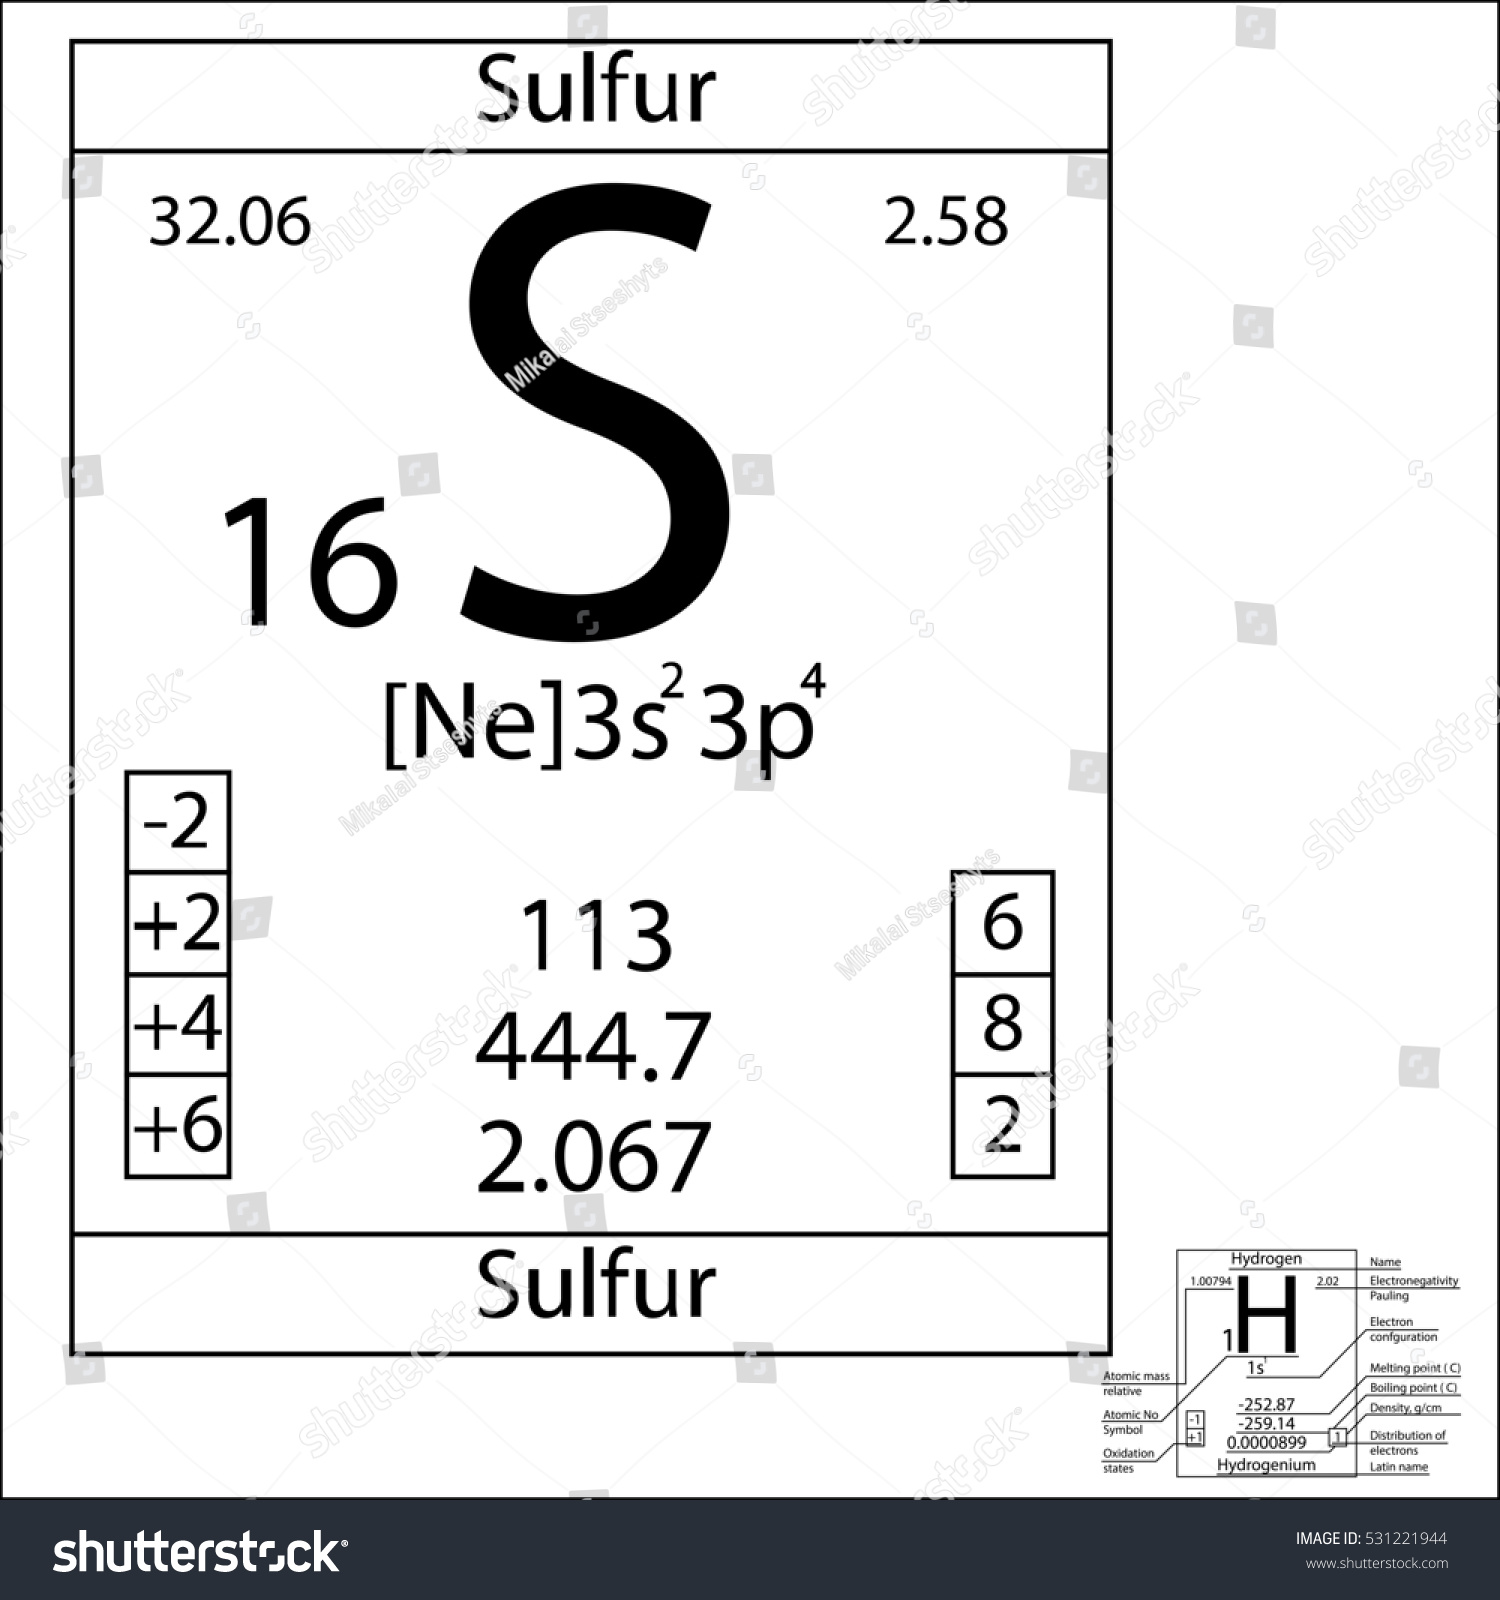 Periodic table for sulfur image collections periodic table images periodic table element sulfur basic properties stock vector the periodic table element sulfur with the basic gamestrikefo Gallery